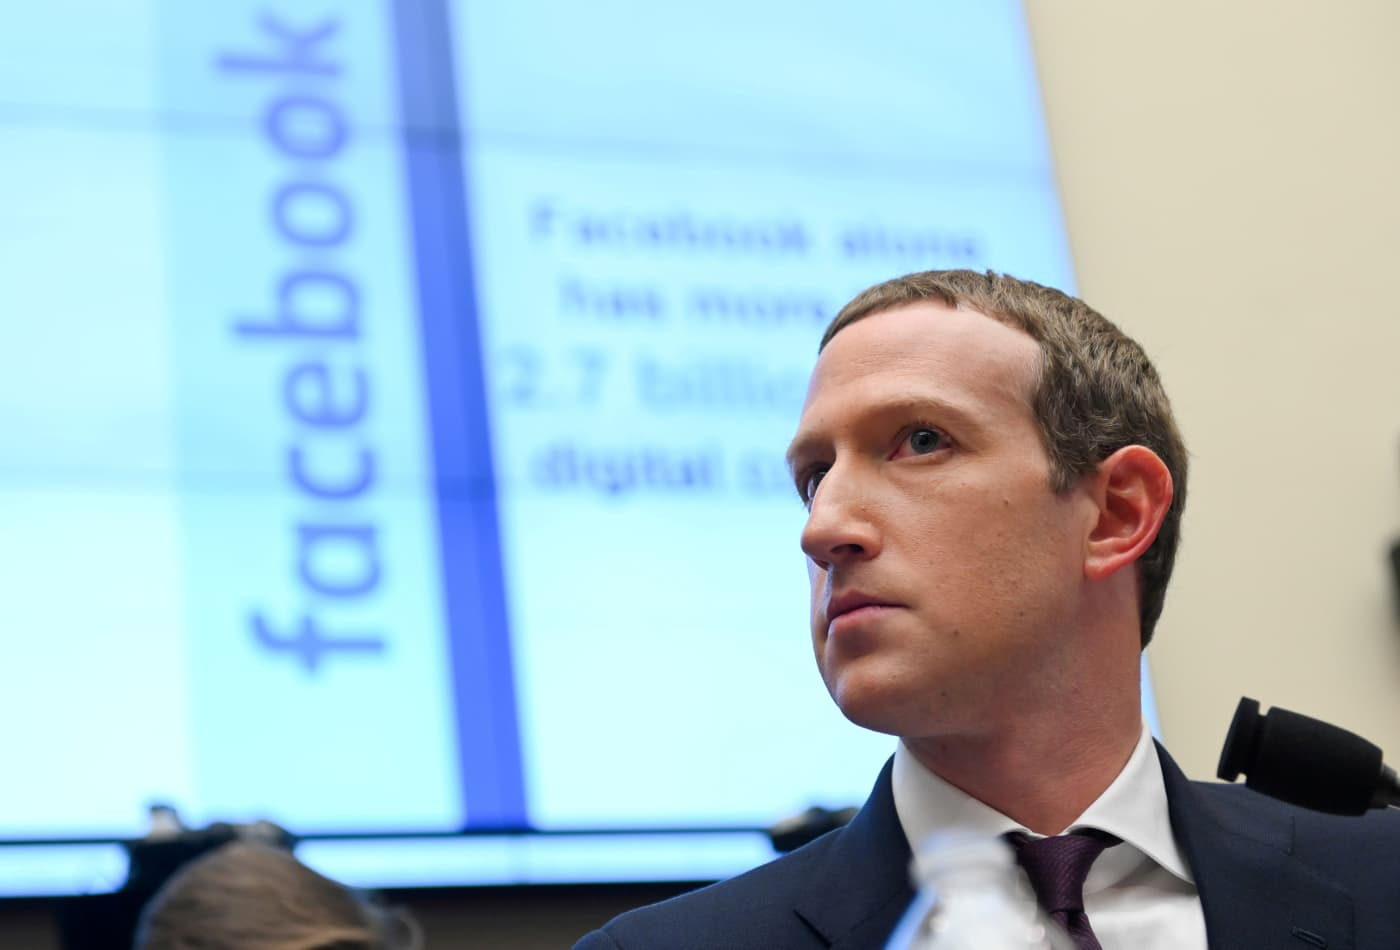 Facebook's Mark Zuckerberg says there's a 'risk of civil unrest' around the election